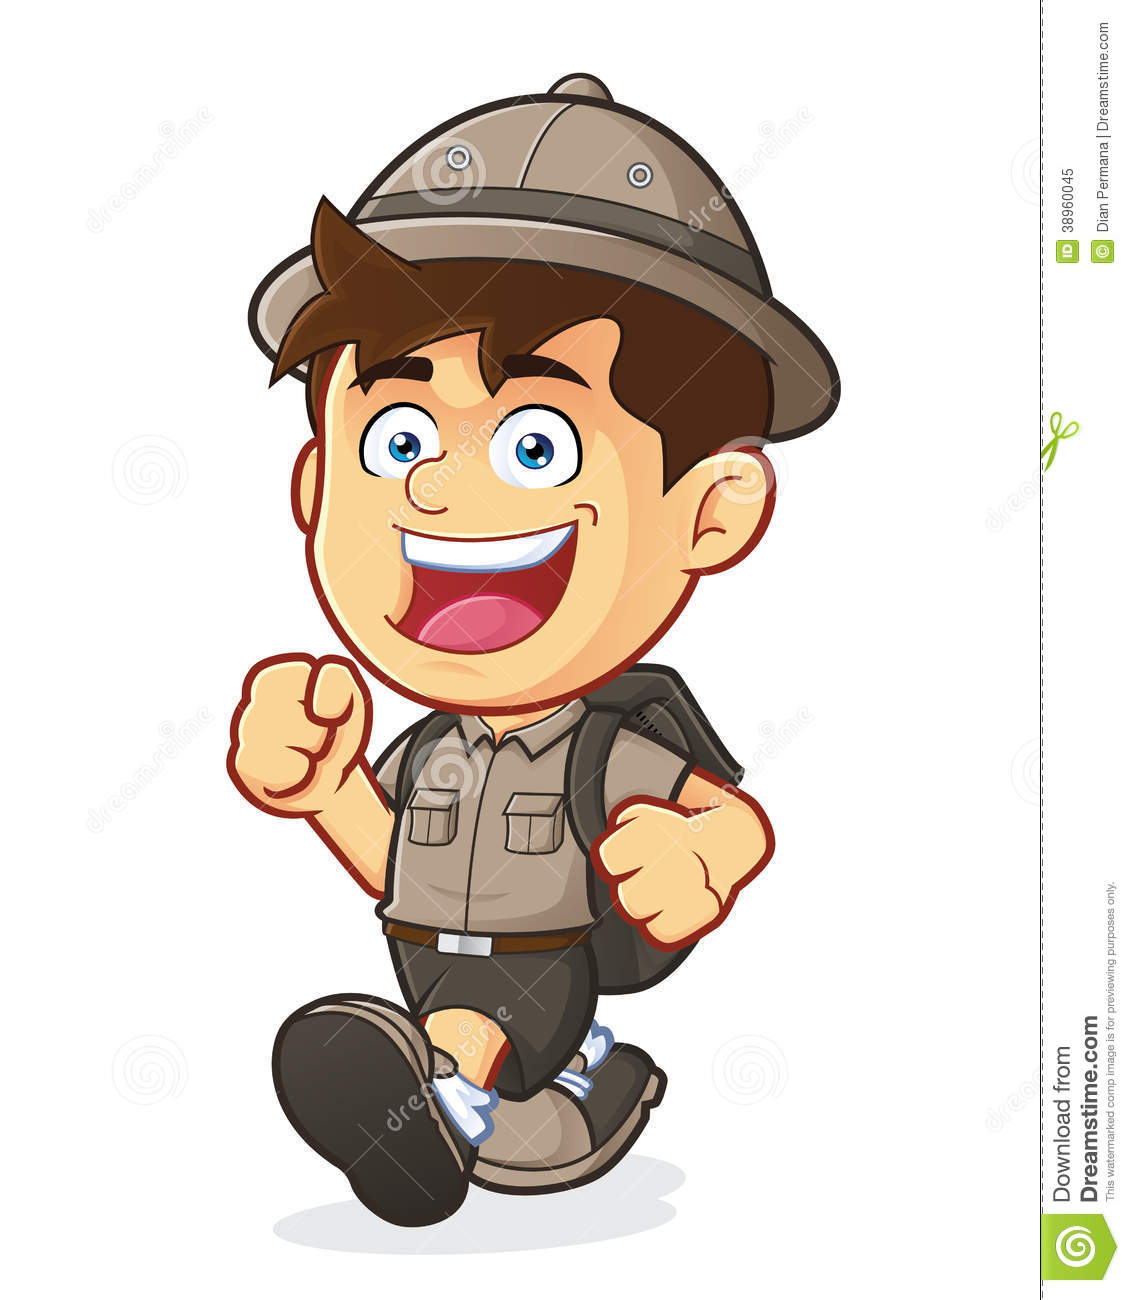 hight resolution of vector clipart picture of a boy scout or explorer boy cartoon character walking